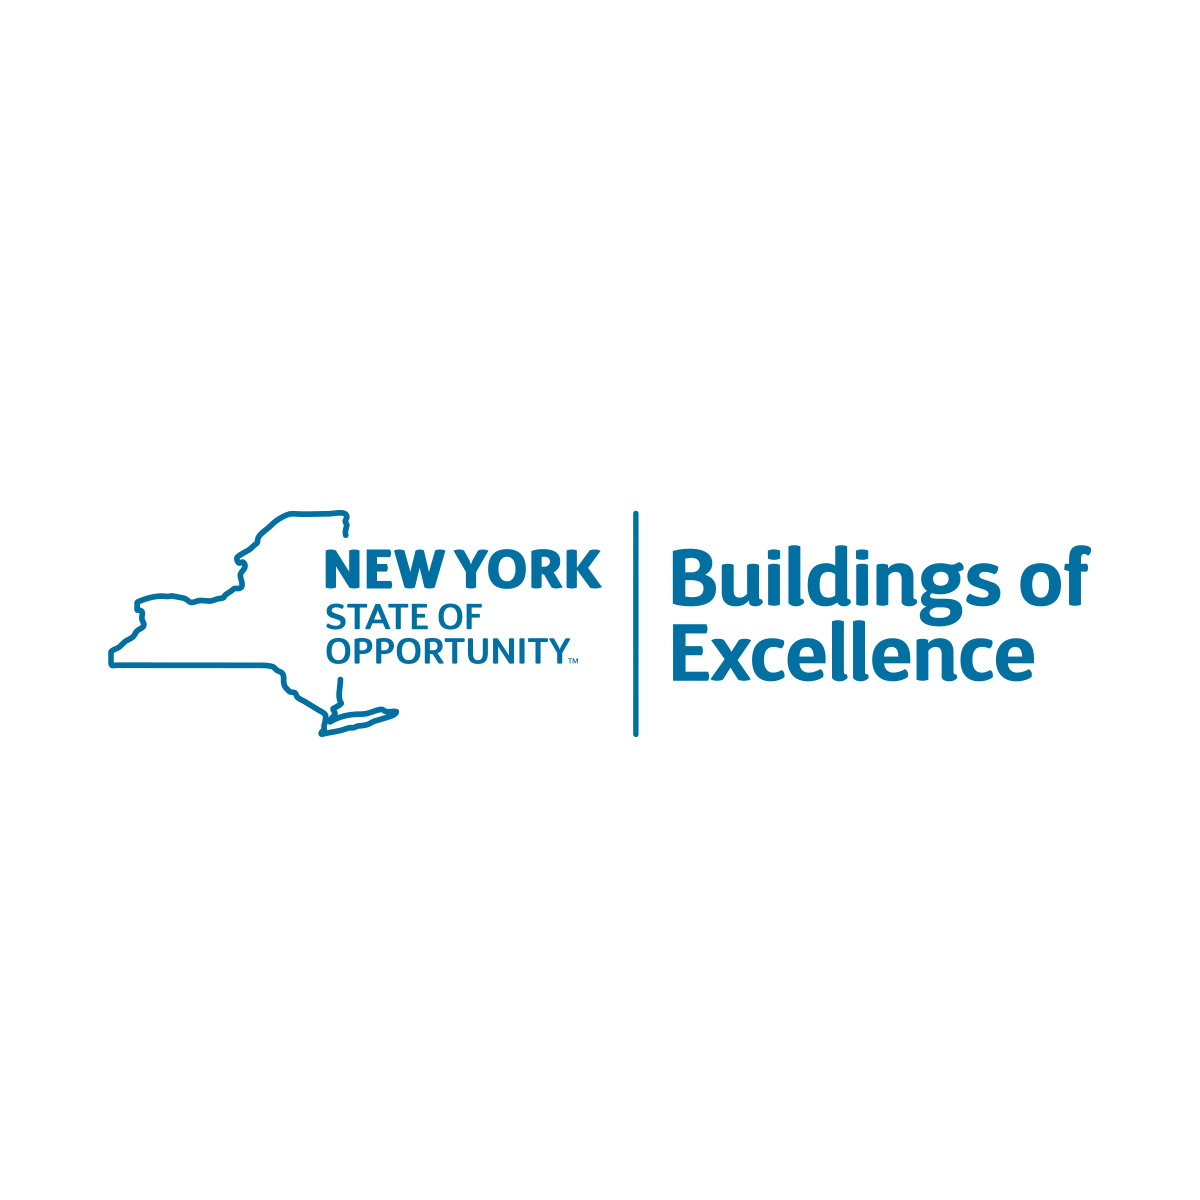 New York State Launches Buildings of Excellence Competition